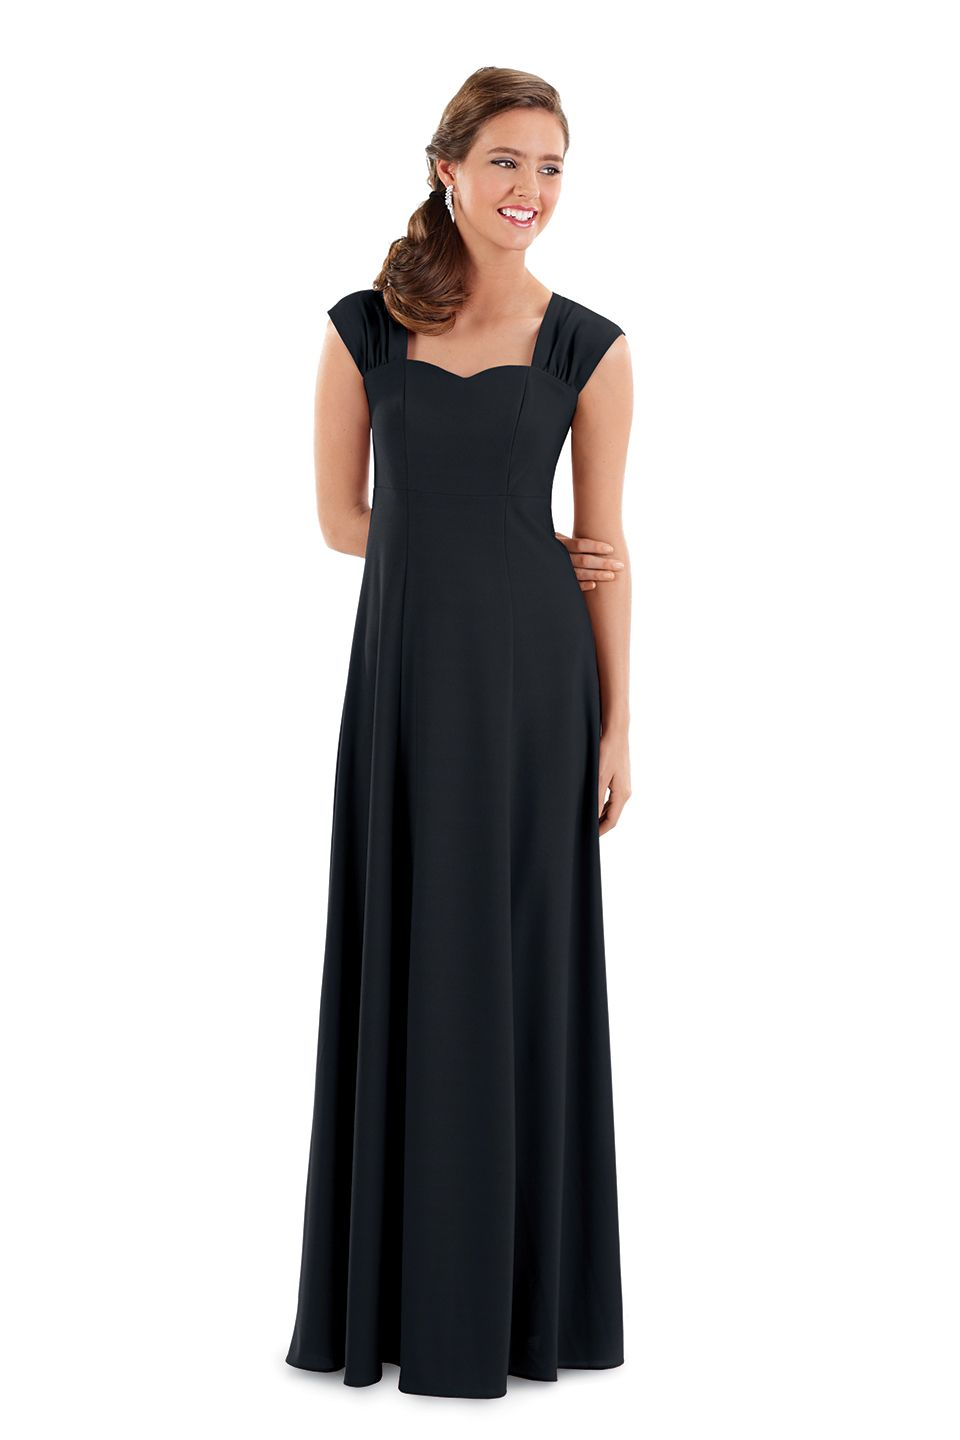 Concerto Dress (adult   youth)  4e235f52c0df0